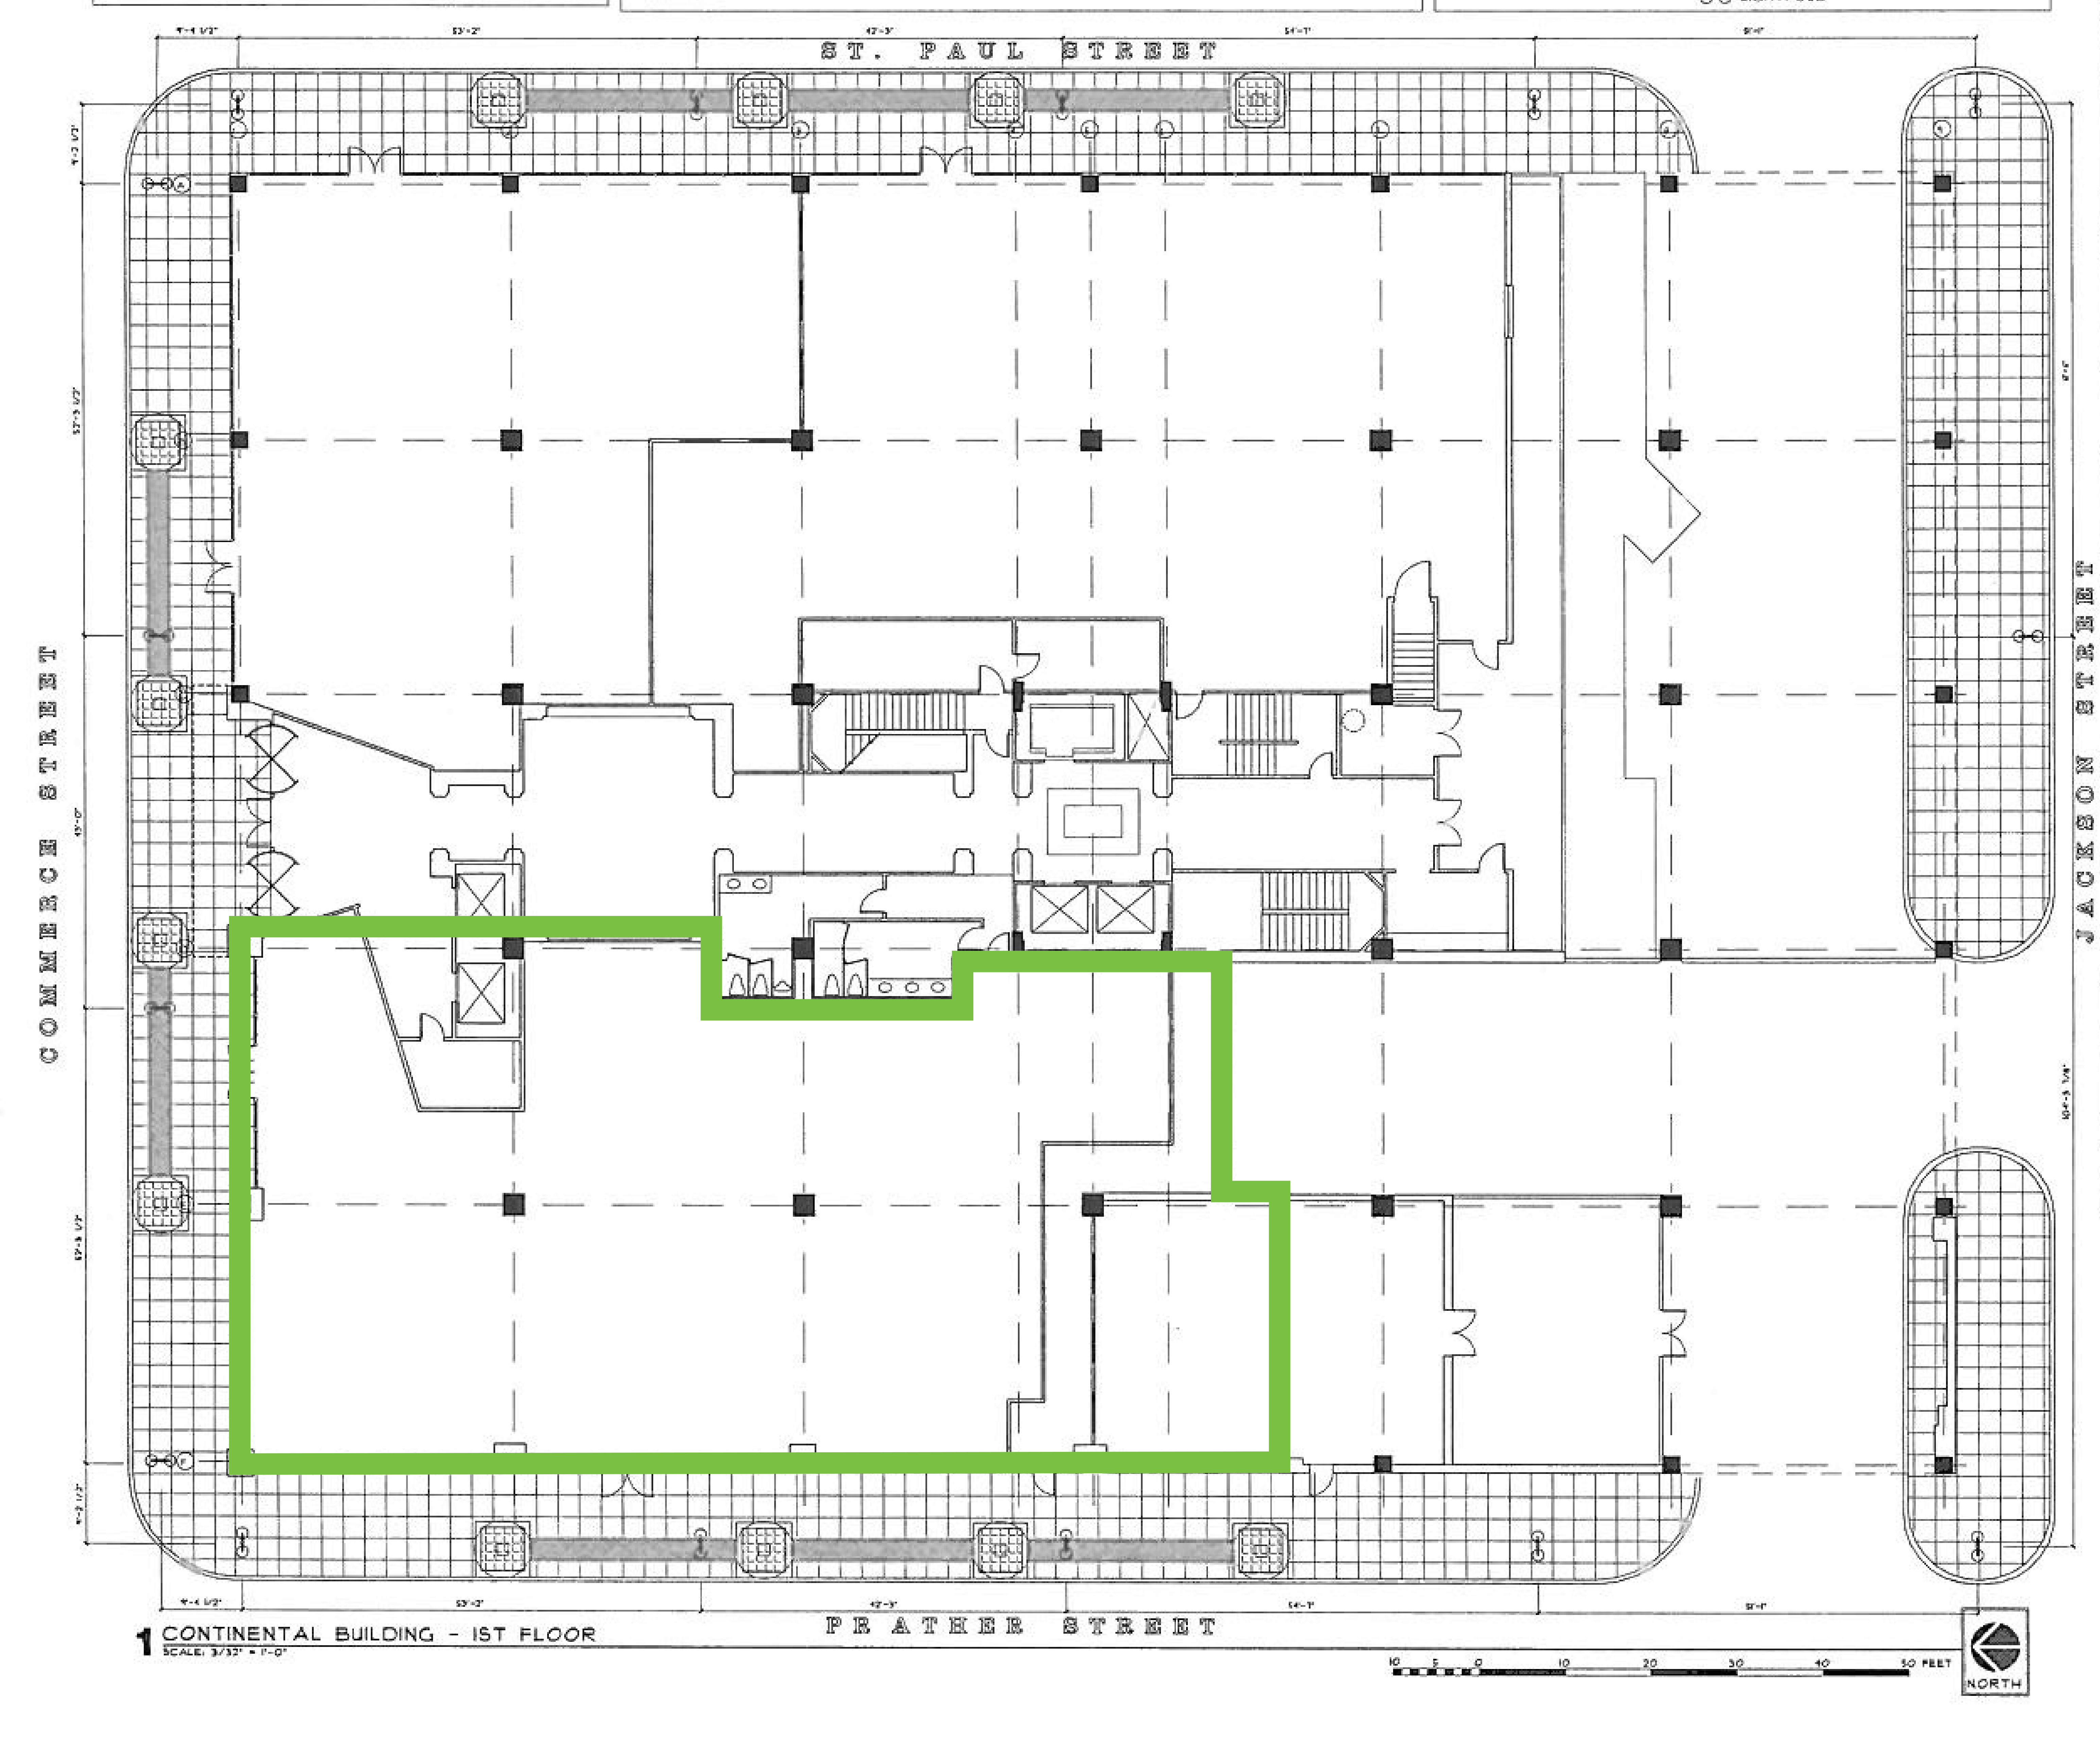 The Continental Building: site plan